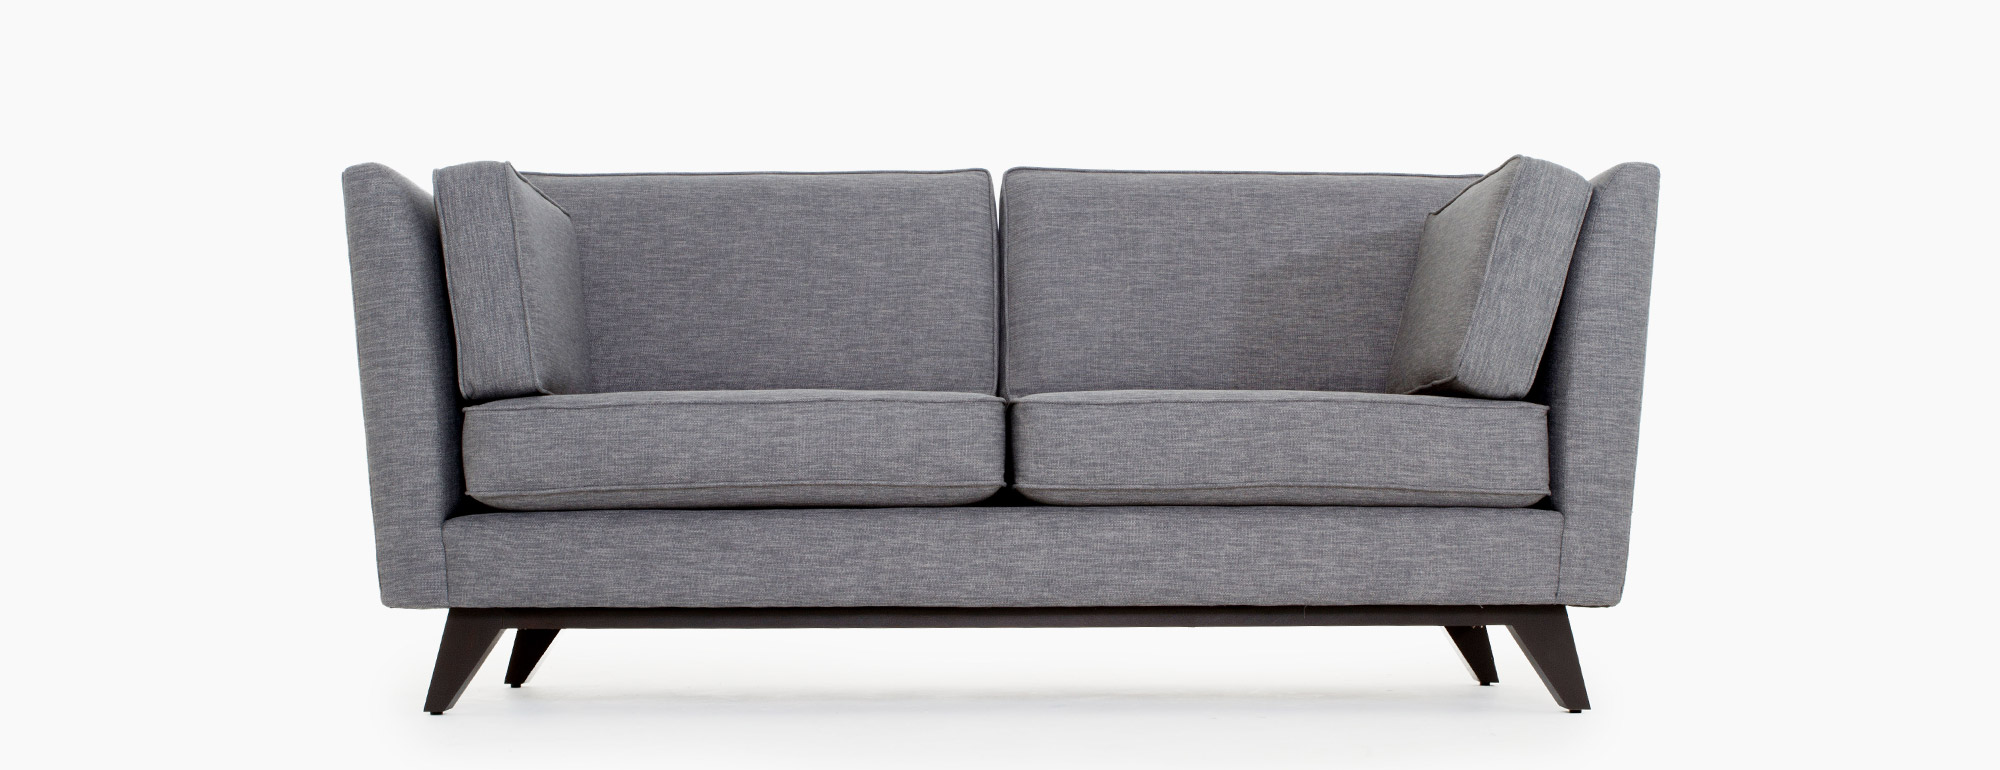 hero-roller-loveseat-1